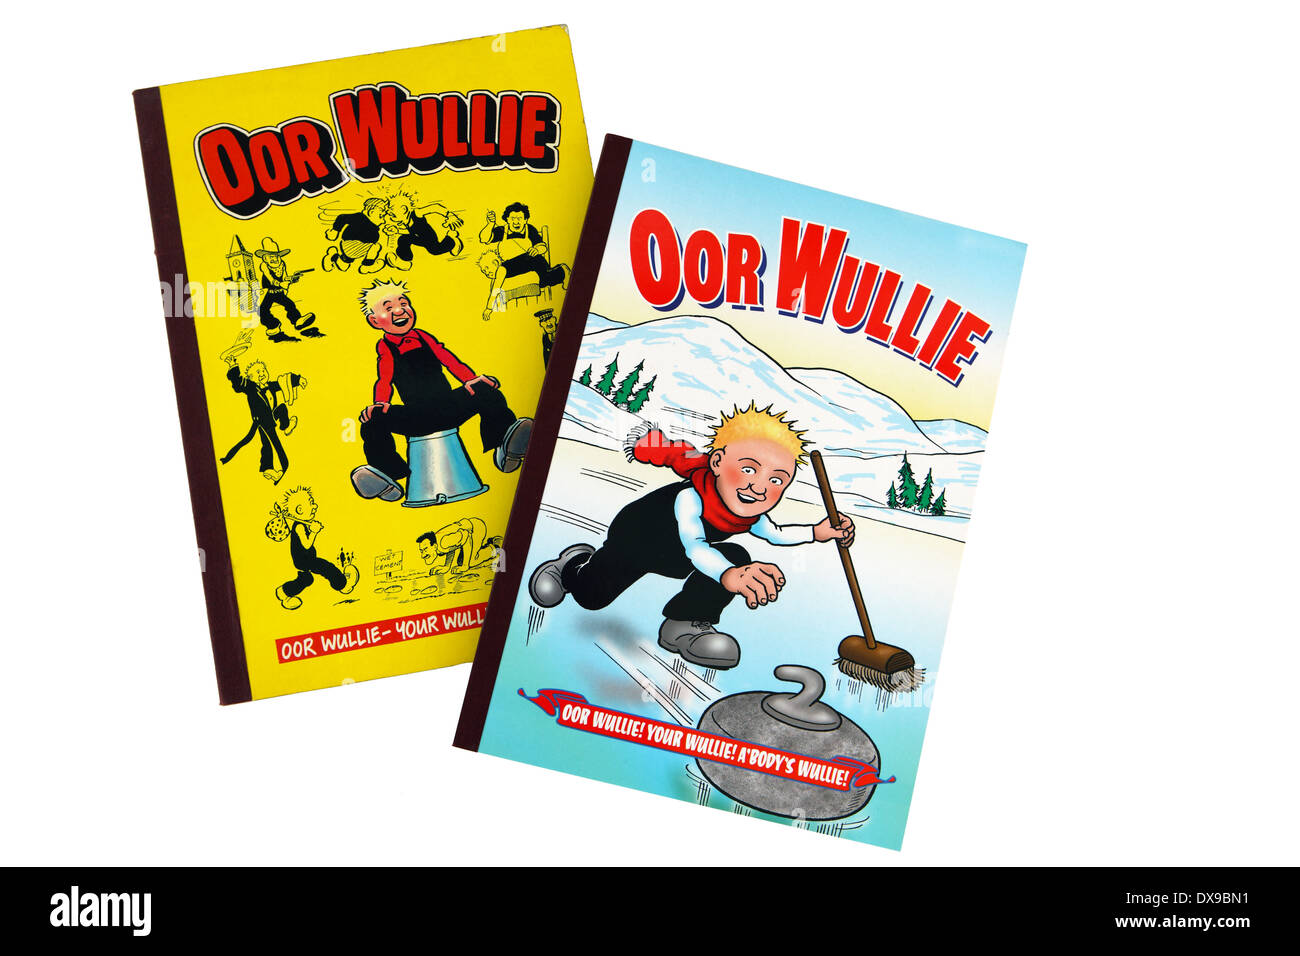 Oor Wullie annuals - Stock Image